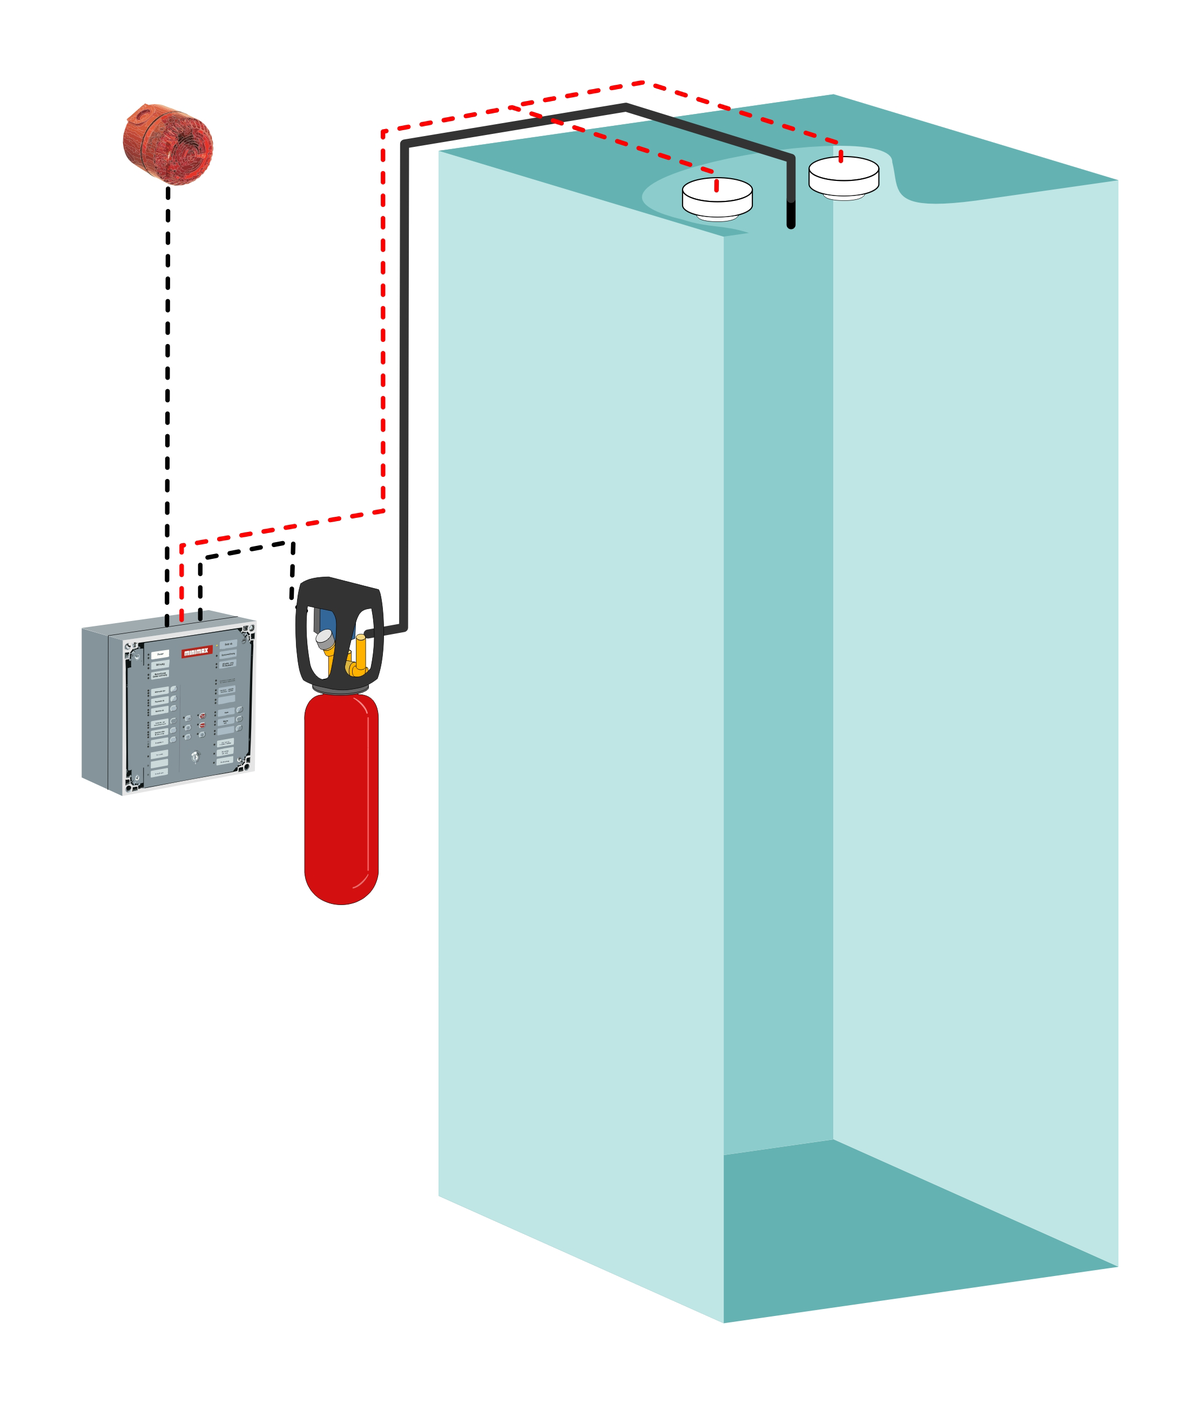 Design of a switch cabinet extinguishing system